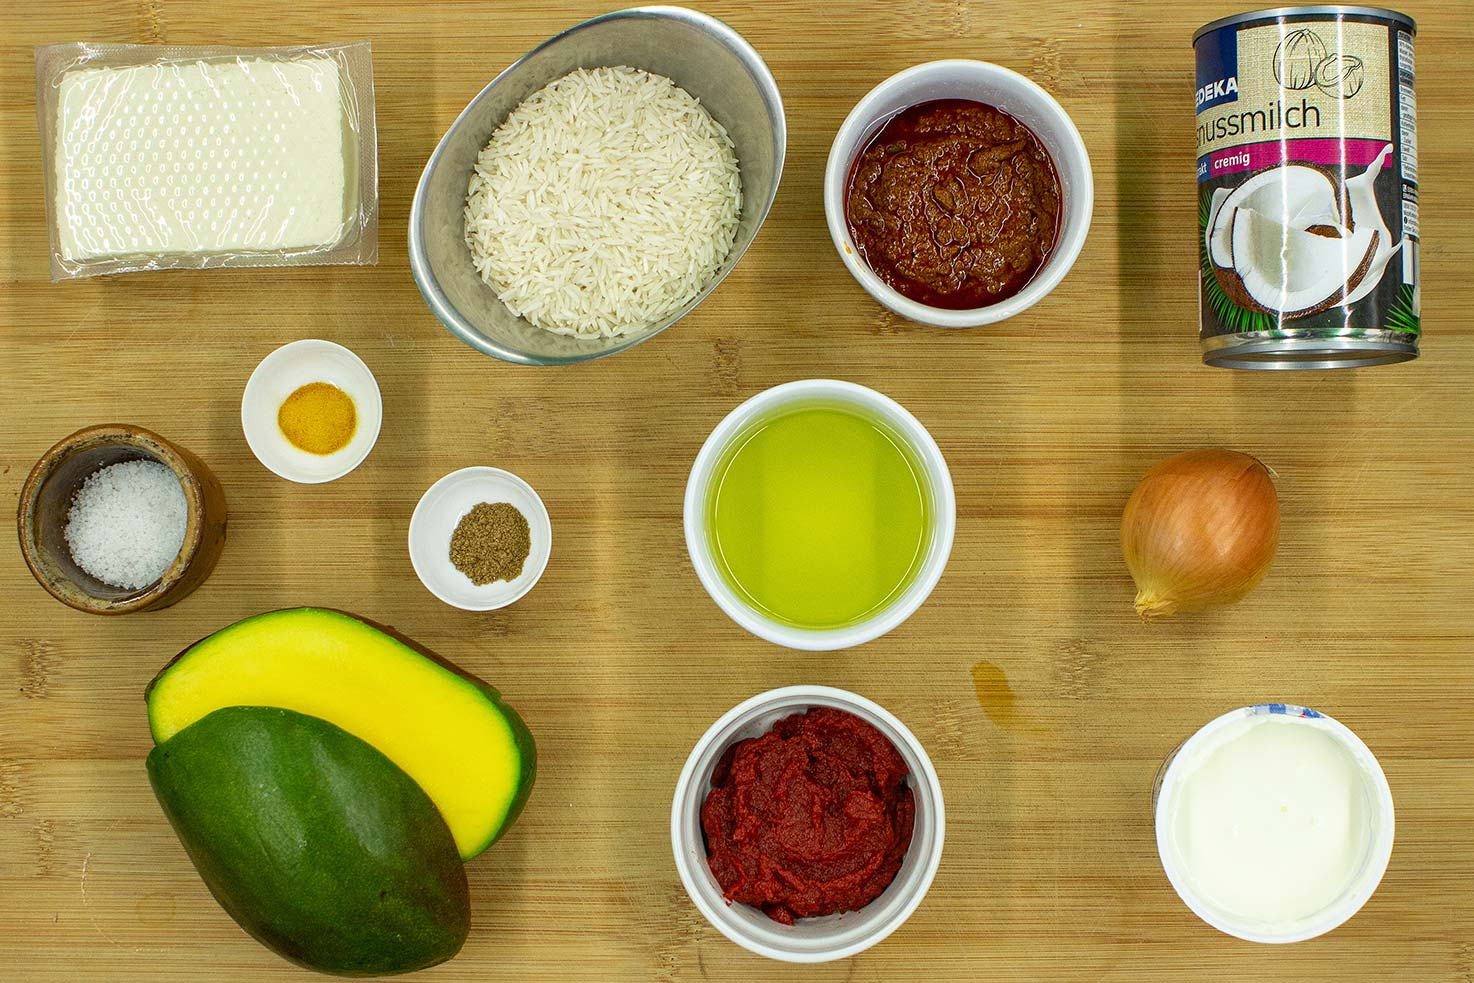 The recipe ingrediets #curry paste #tomato paste | hurrythefoodup.com